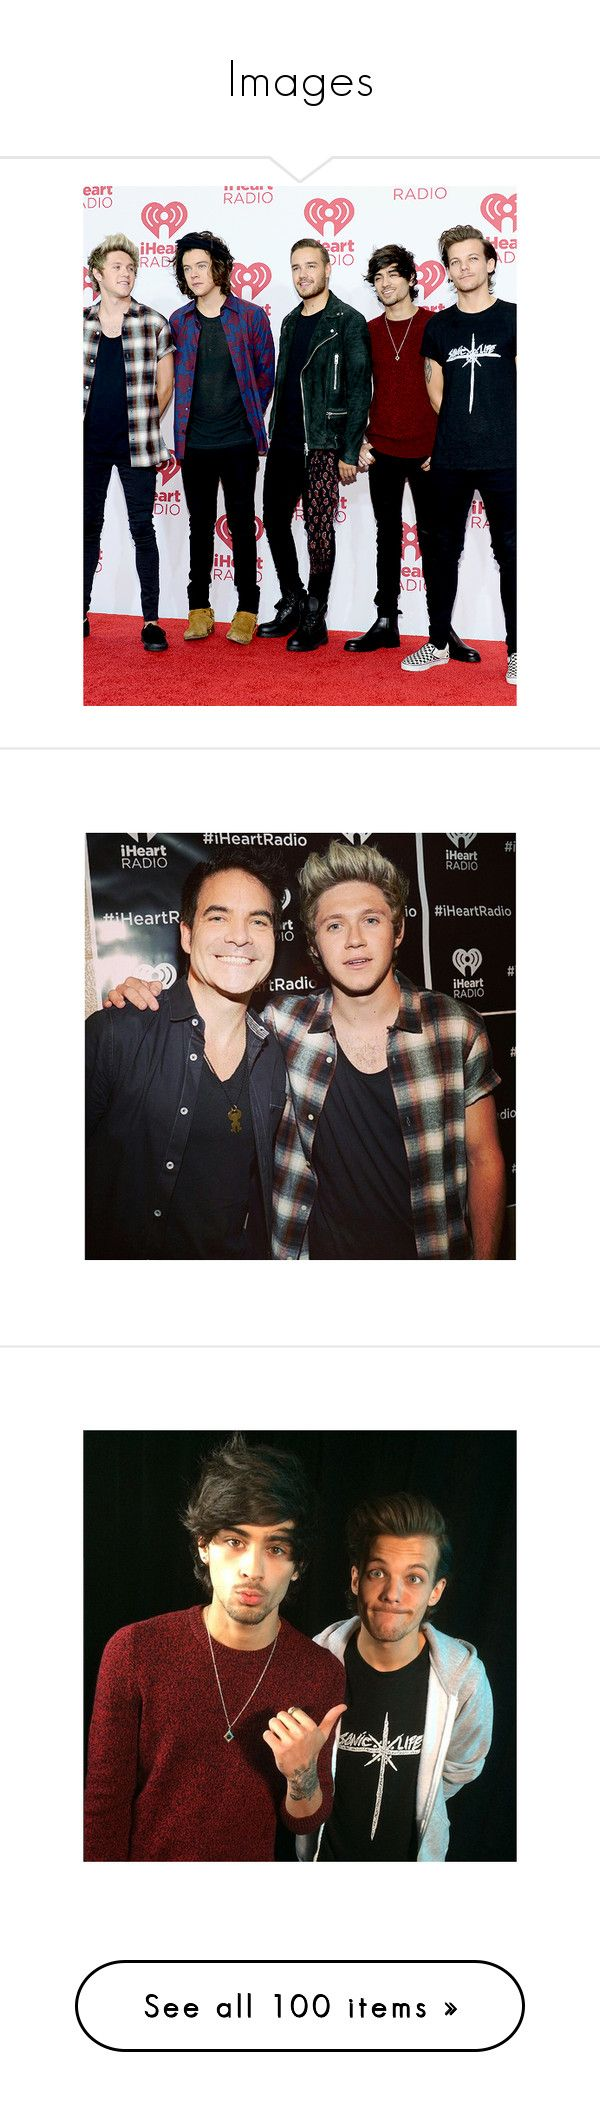 """Images"" by charlie-horan-irwin ❤ liked on Polyvore featuring family, 5sos, girlfriend, oedirection, one direction, 1d, photo, pictures, niall and niall horan"